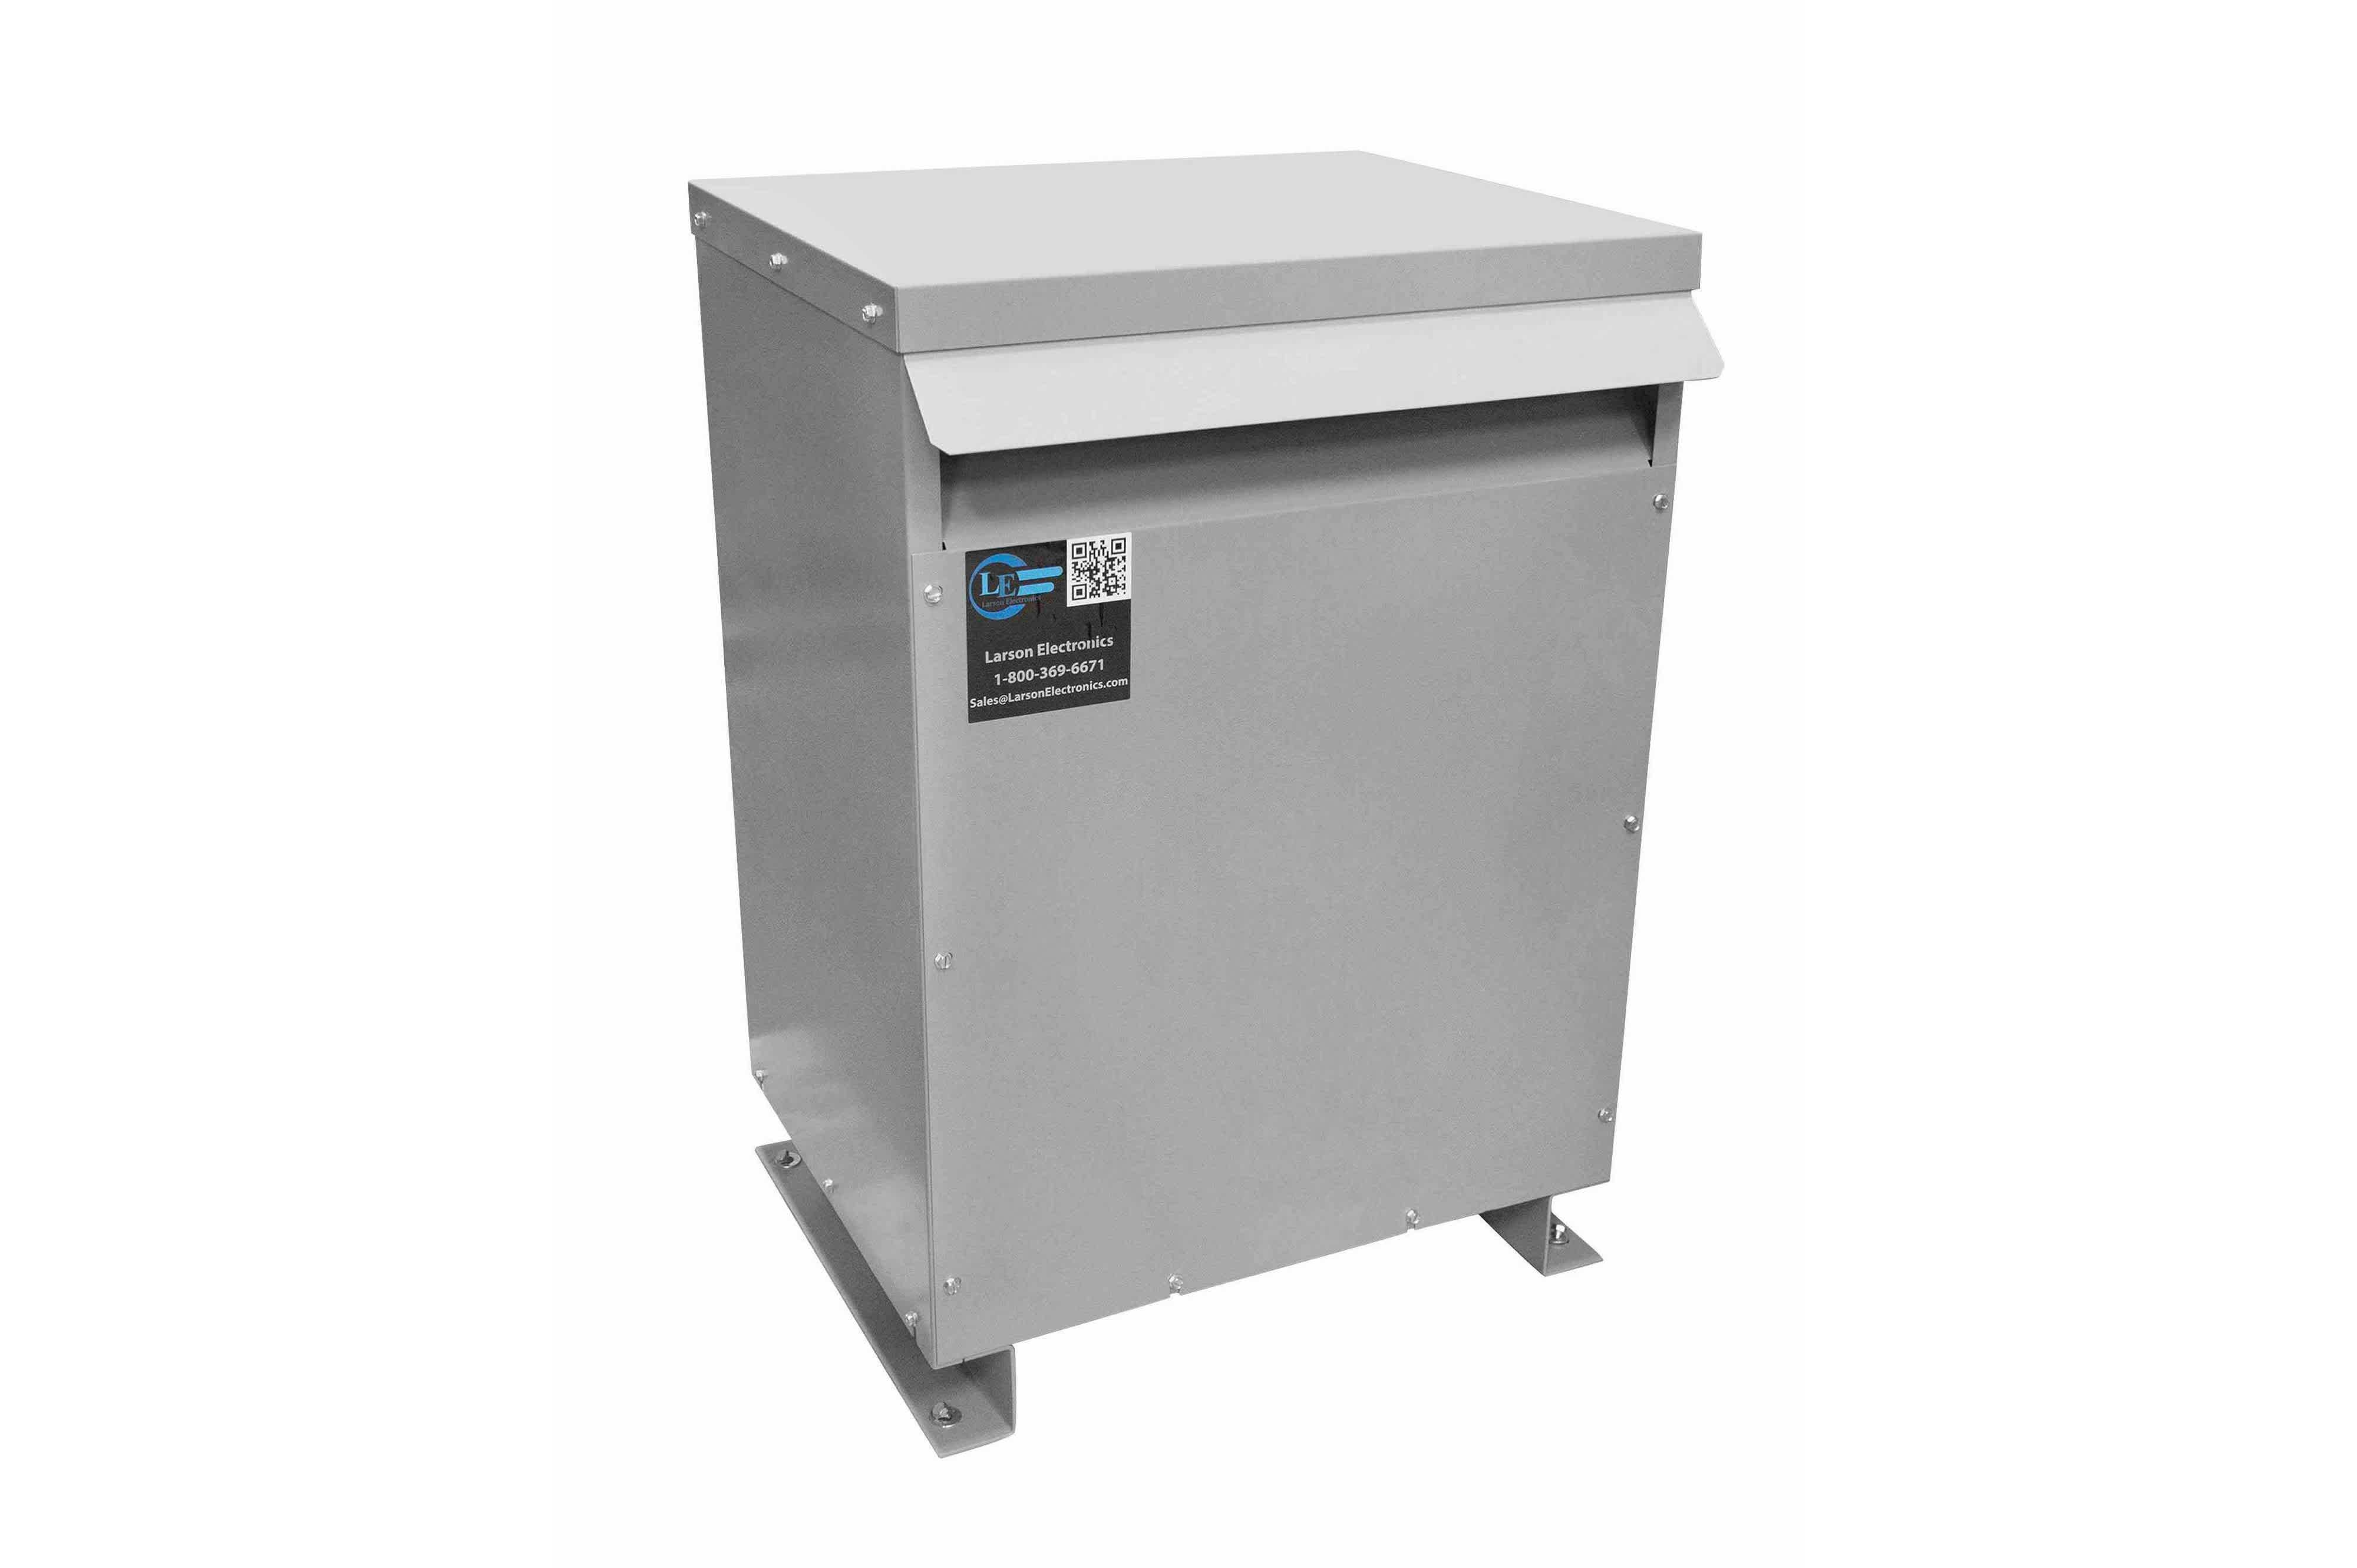 27 kVA 3PH Isolation Transformer, 480V Wye Primary, 575V Delta Secondary, N3R, Ventilated, 60 Hz